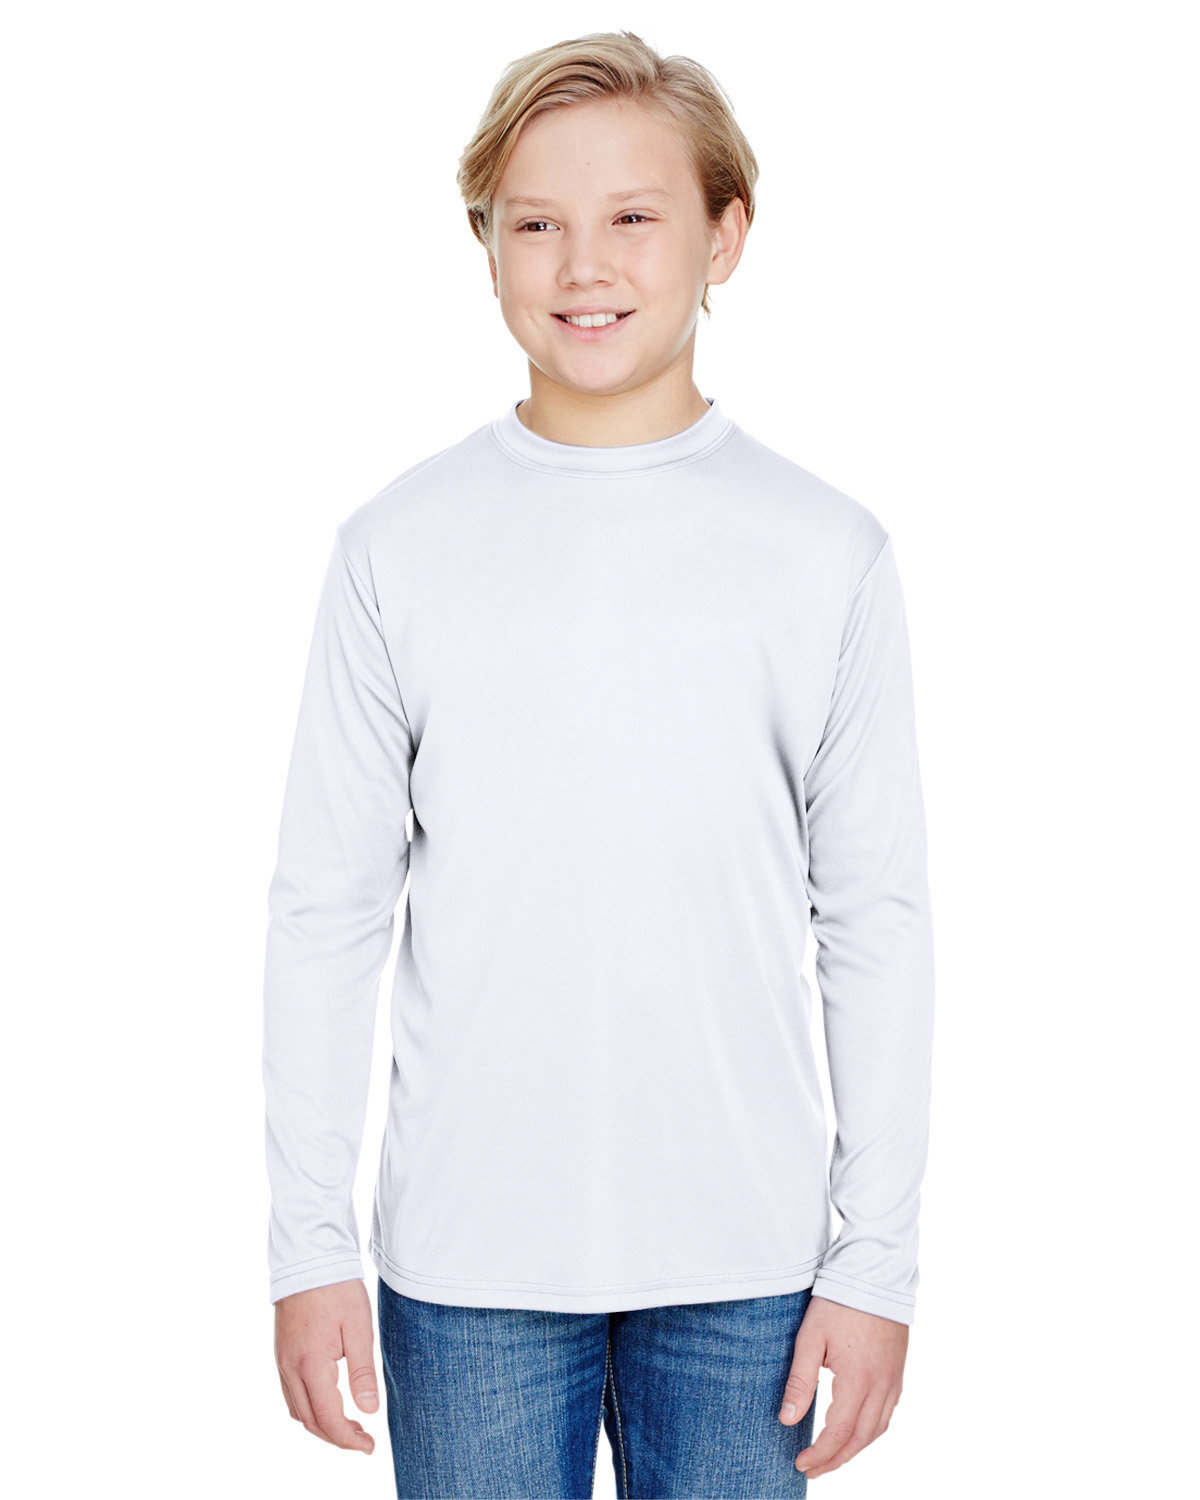 A4 Youth Long Sleeve Cooling Performance Crew Shirt WHITE